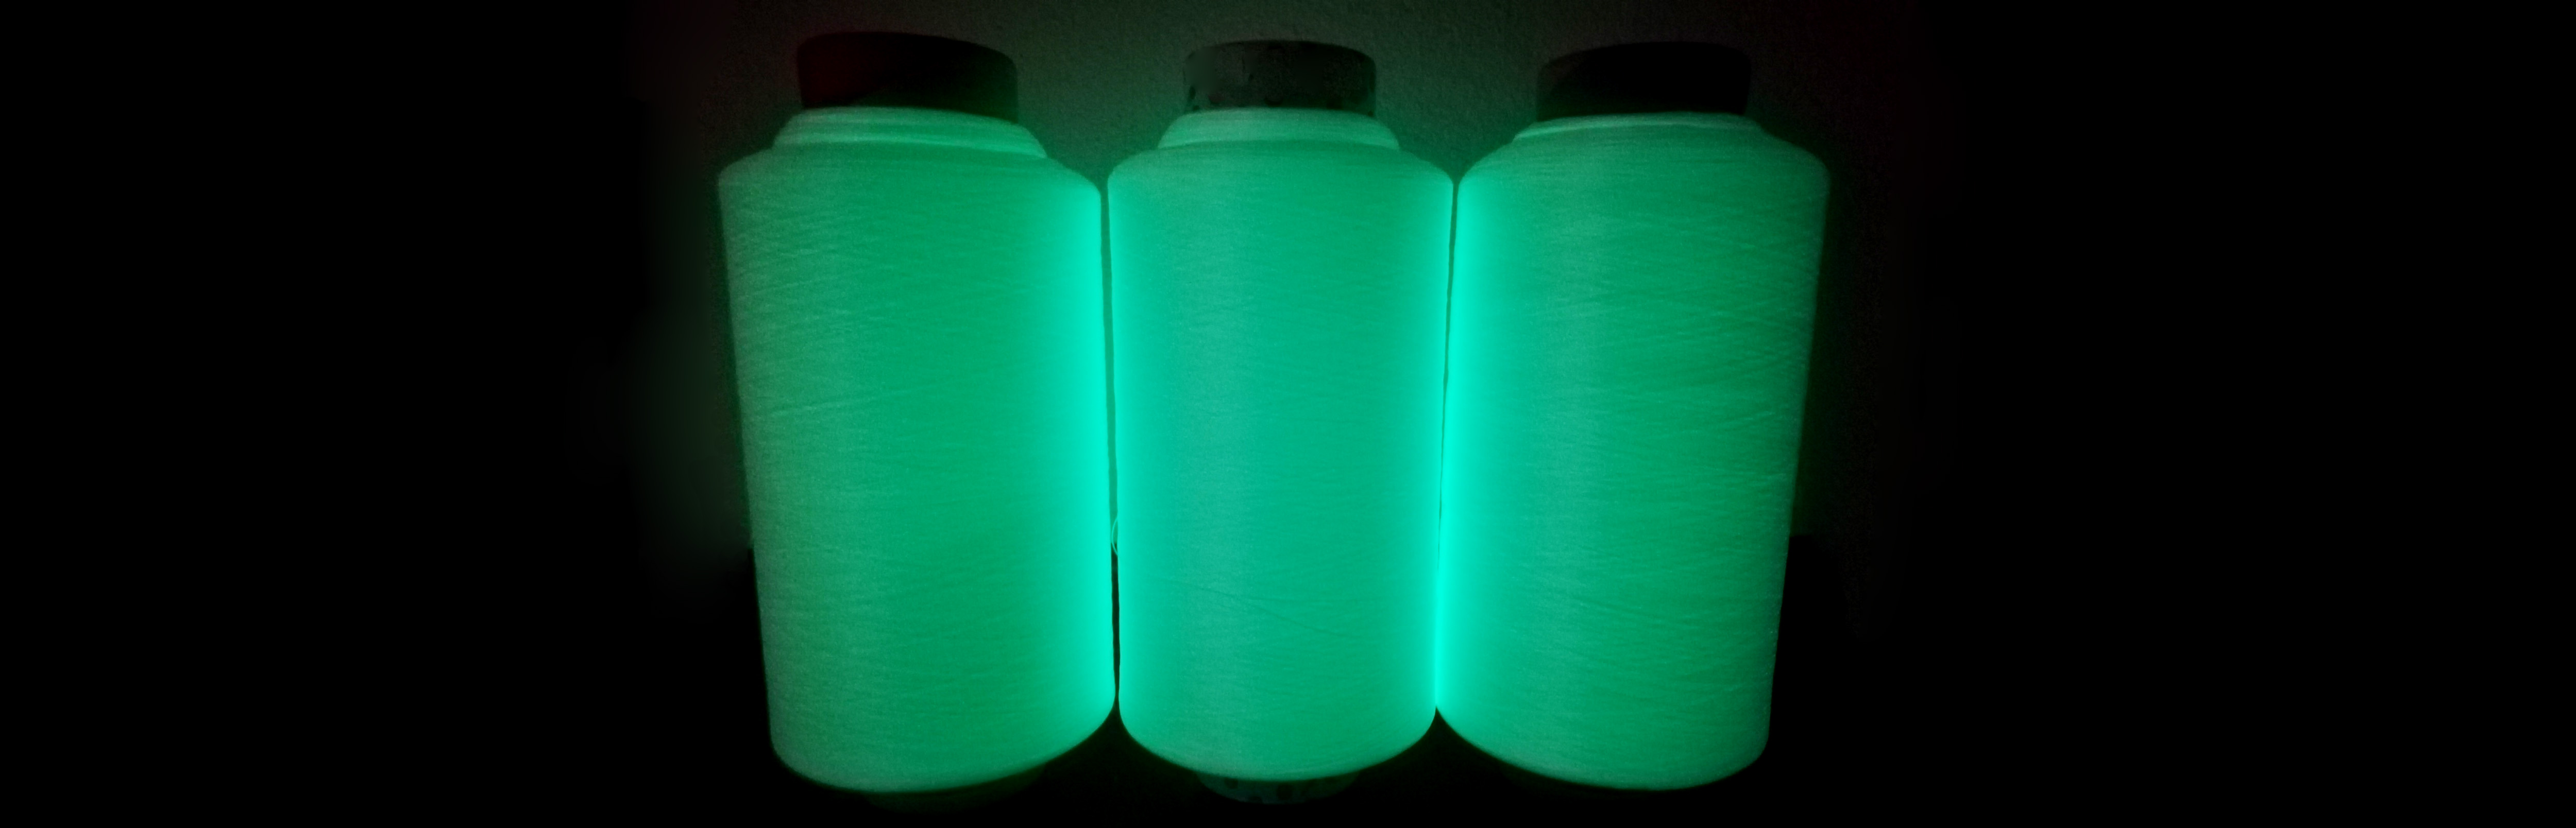 Glow Yarn For Luminescent Effects In Textiles From Swicofil